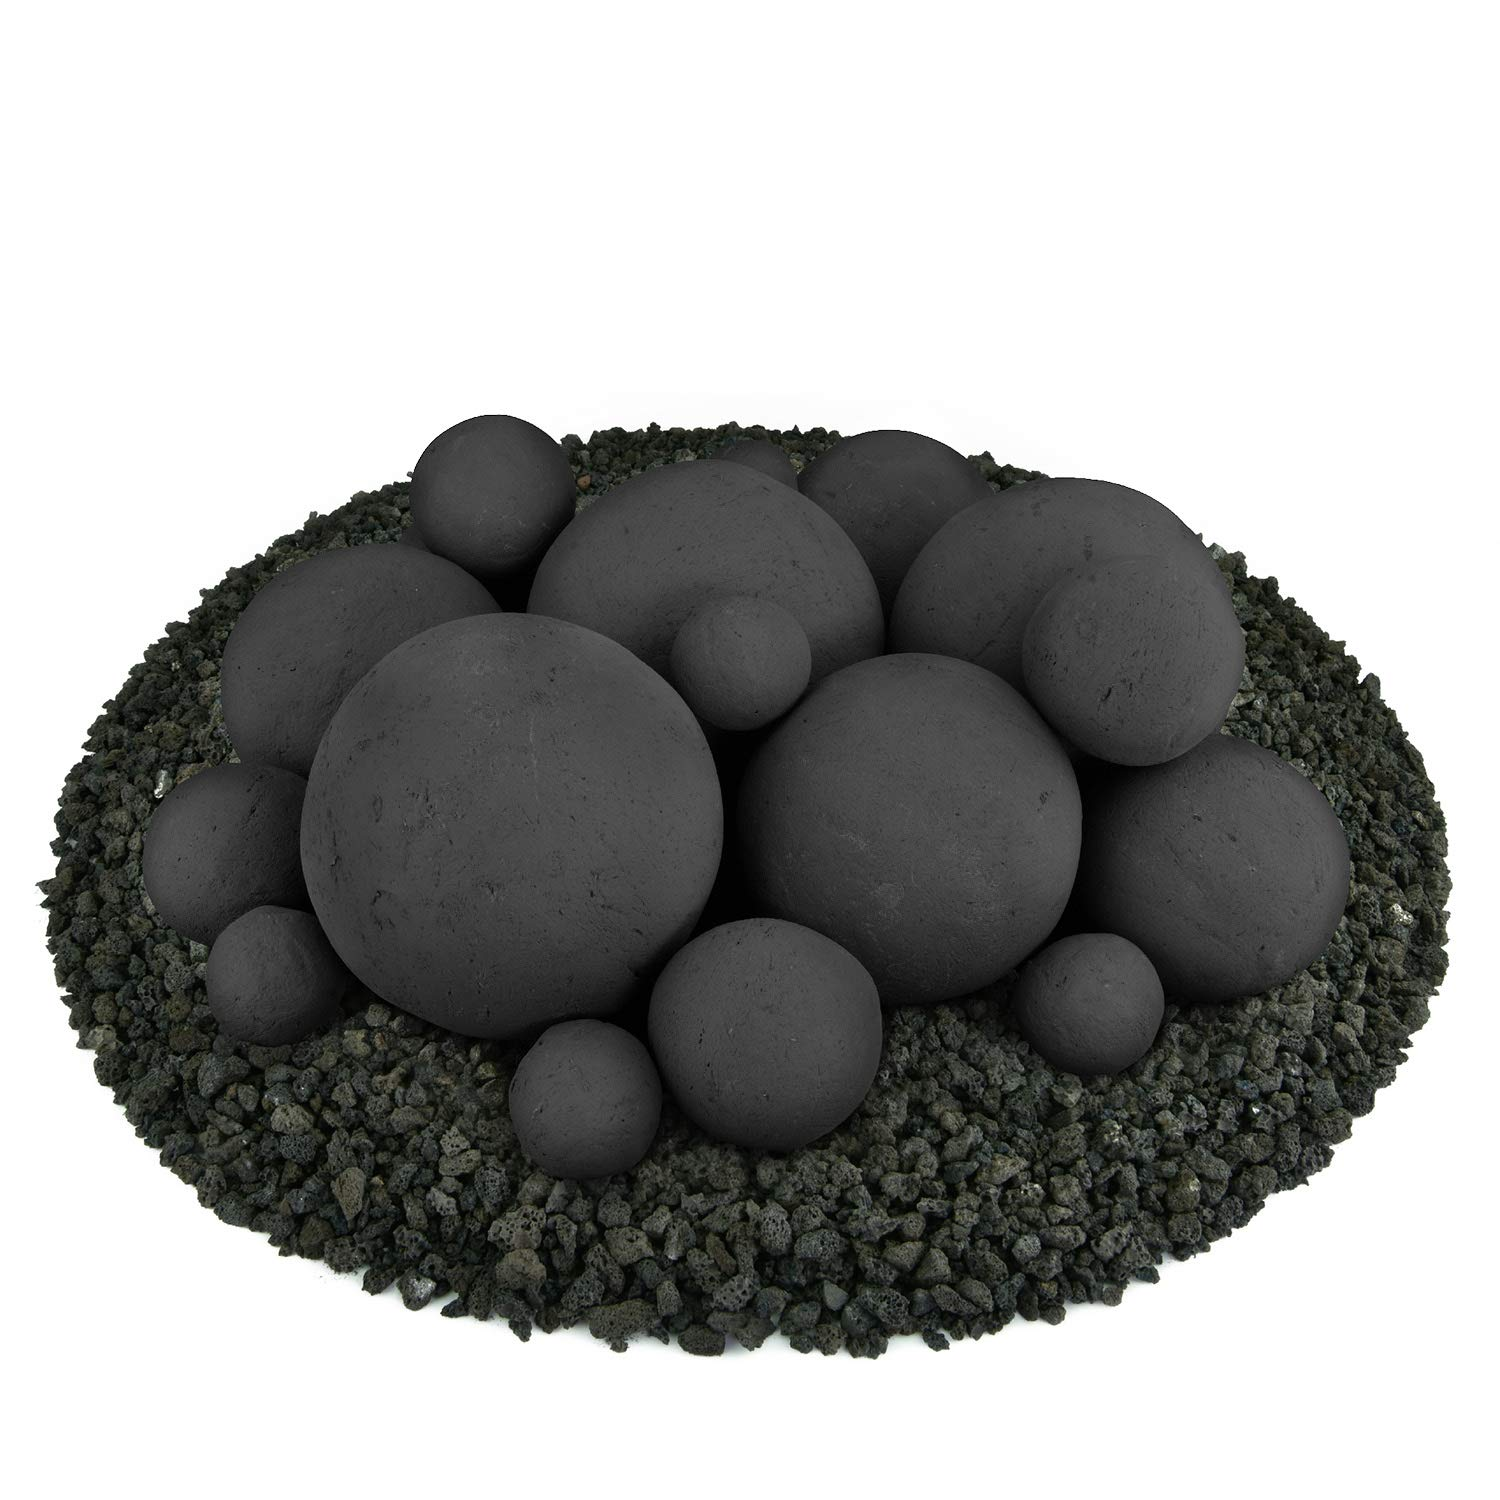 Ceramic Fire Balls | Mixed Set of 18 | Modern Accessory for Indoor and Outdoor Fire Pits or Fireplaces – Brushed Concrete Look | Midnight Black